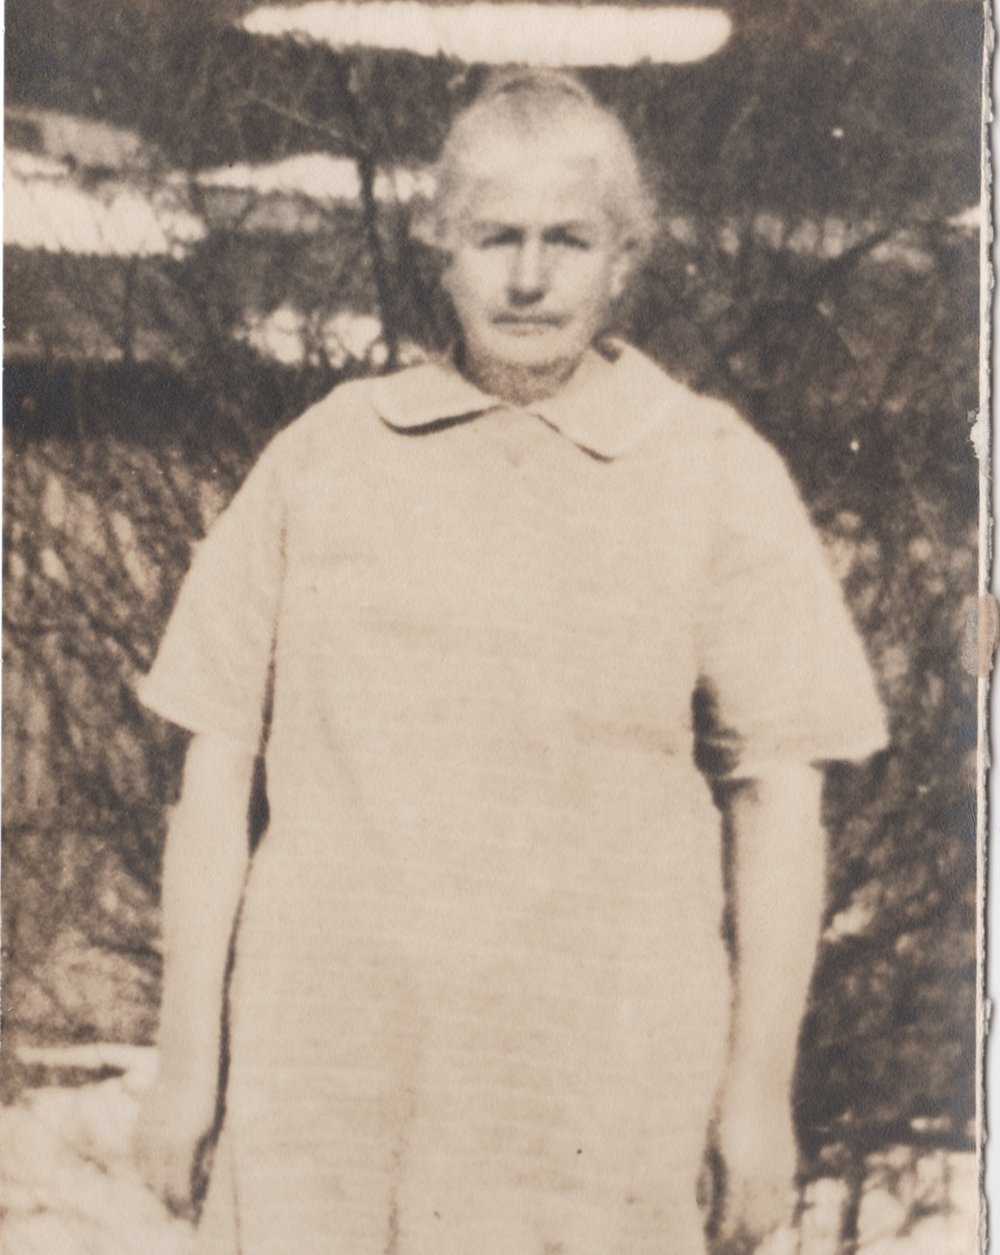 Clara Rachel Miles/Myers Sears as an older woman